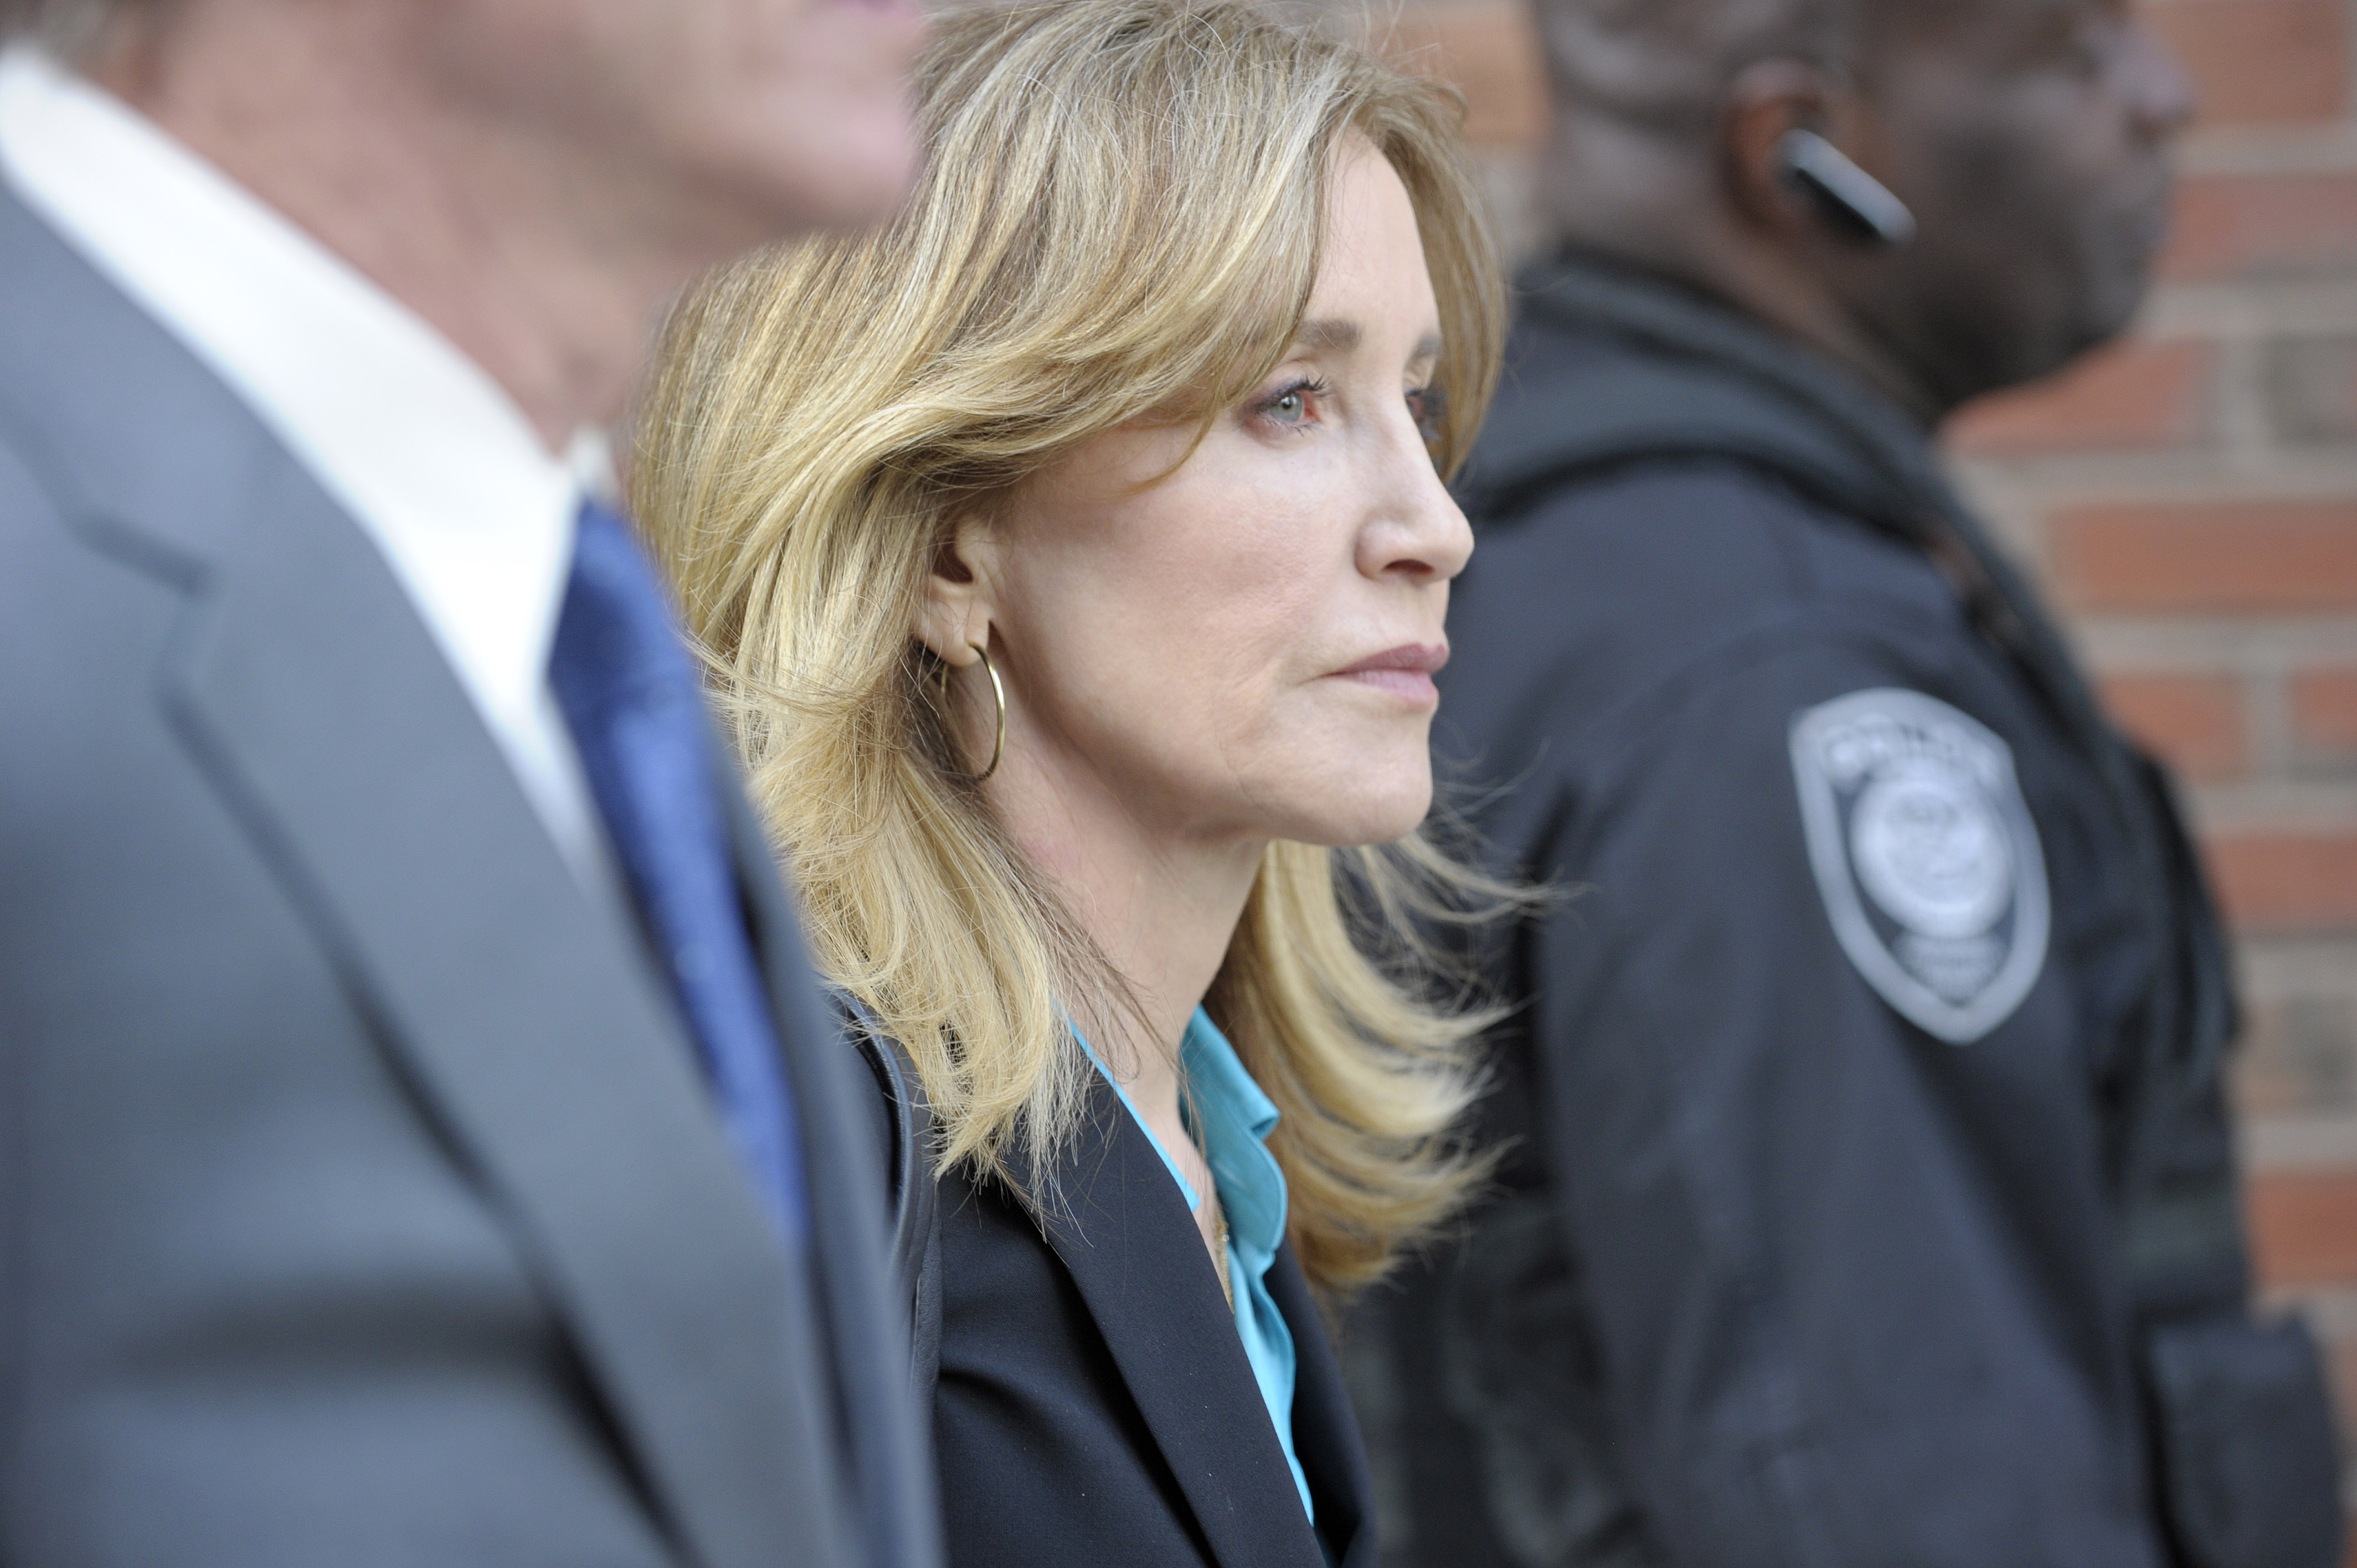 Actress Felicity Huffman exits the courthouse after facing charges for allegedly conspiring to commit mail fraud and other charges in the college admissions scandal at the John Joseph Moakley United States Courthouse in Boston on April 3, 2019. (Photo credit JOSEPH PREZIOSO/AFP/Getty Images)